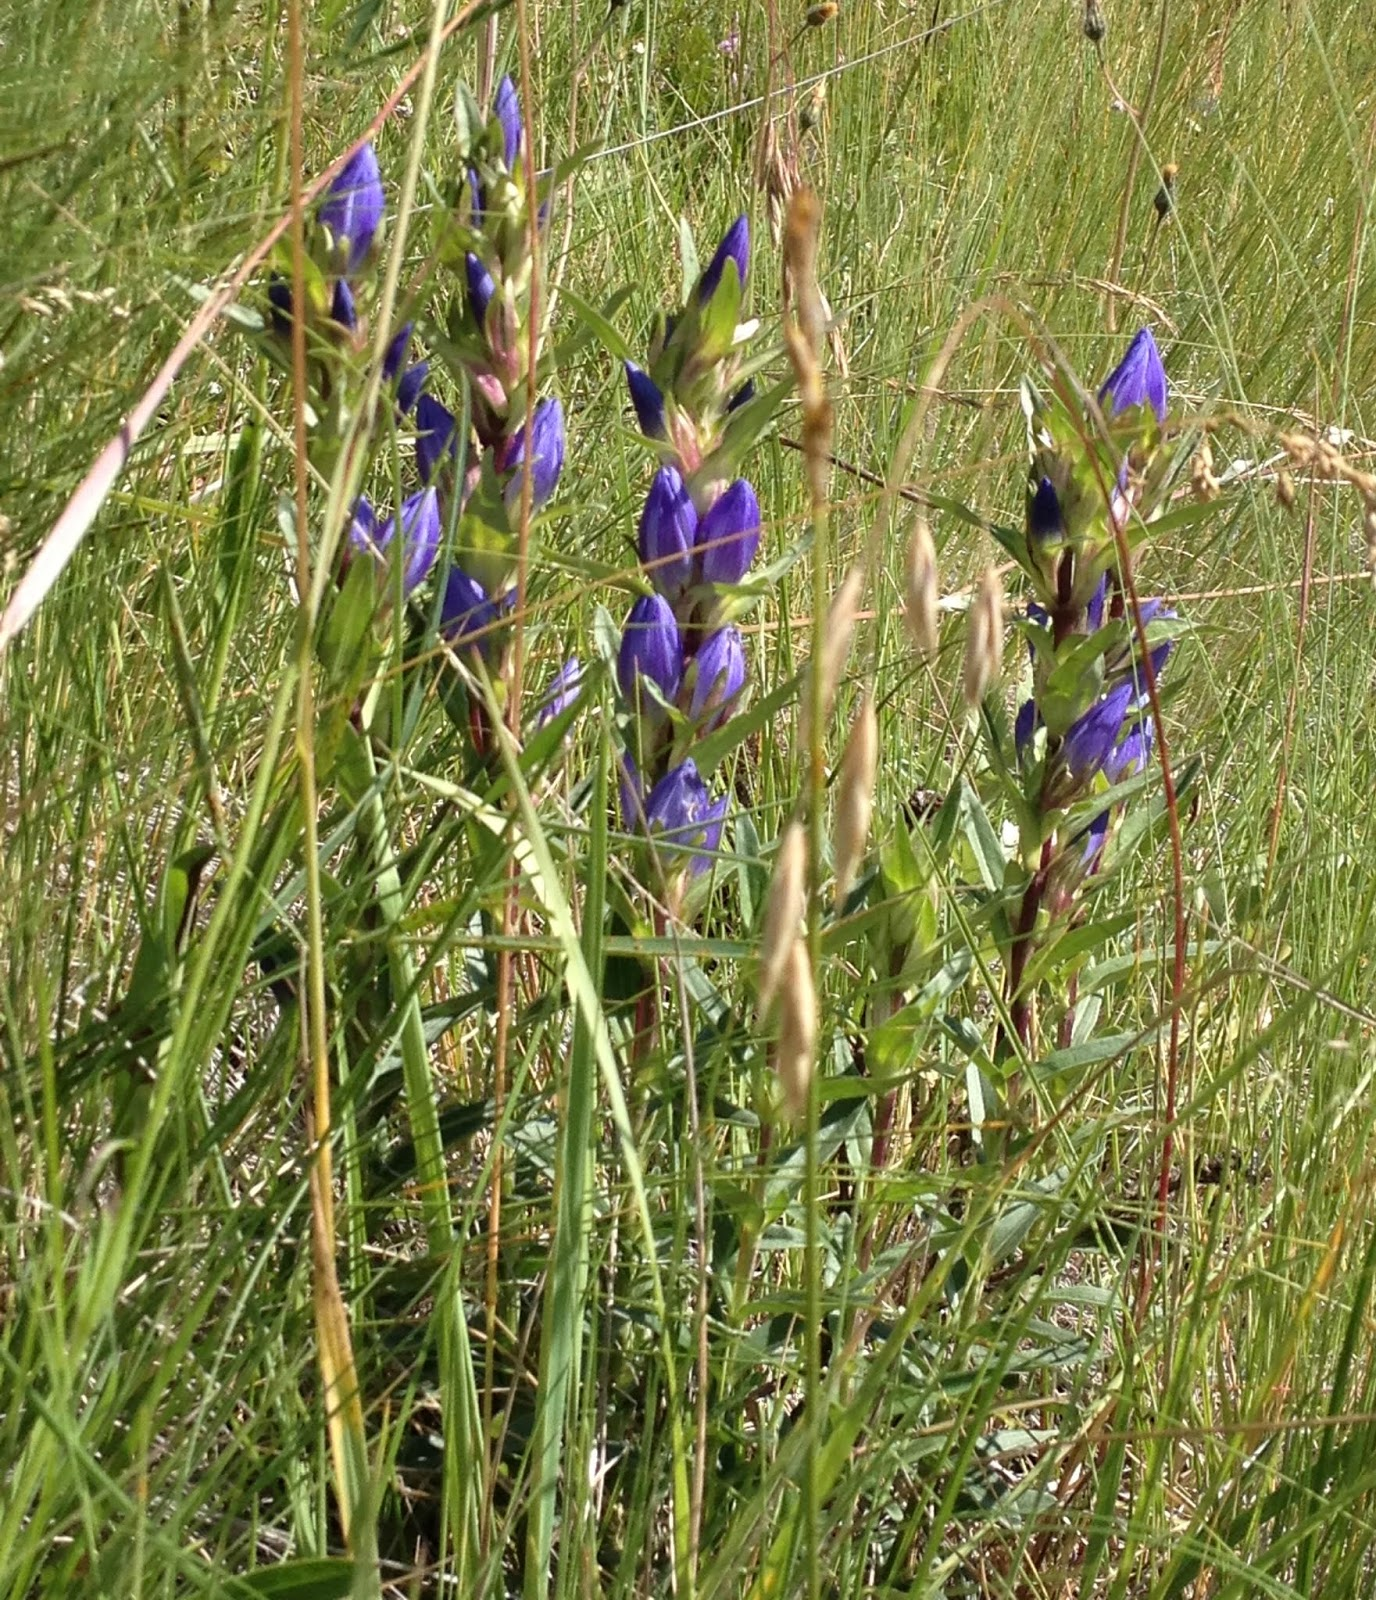 gentian works a bitter principle to promote digestion gentian is a god created wild plant met in the mountains god has provided us a healing dialog with